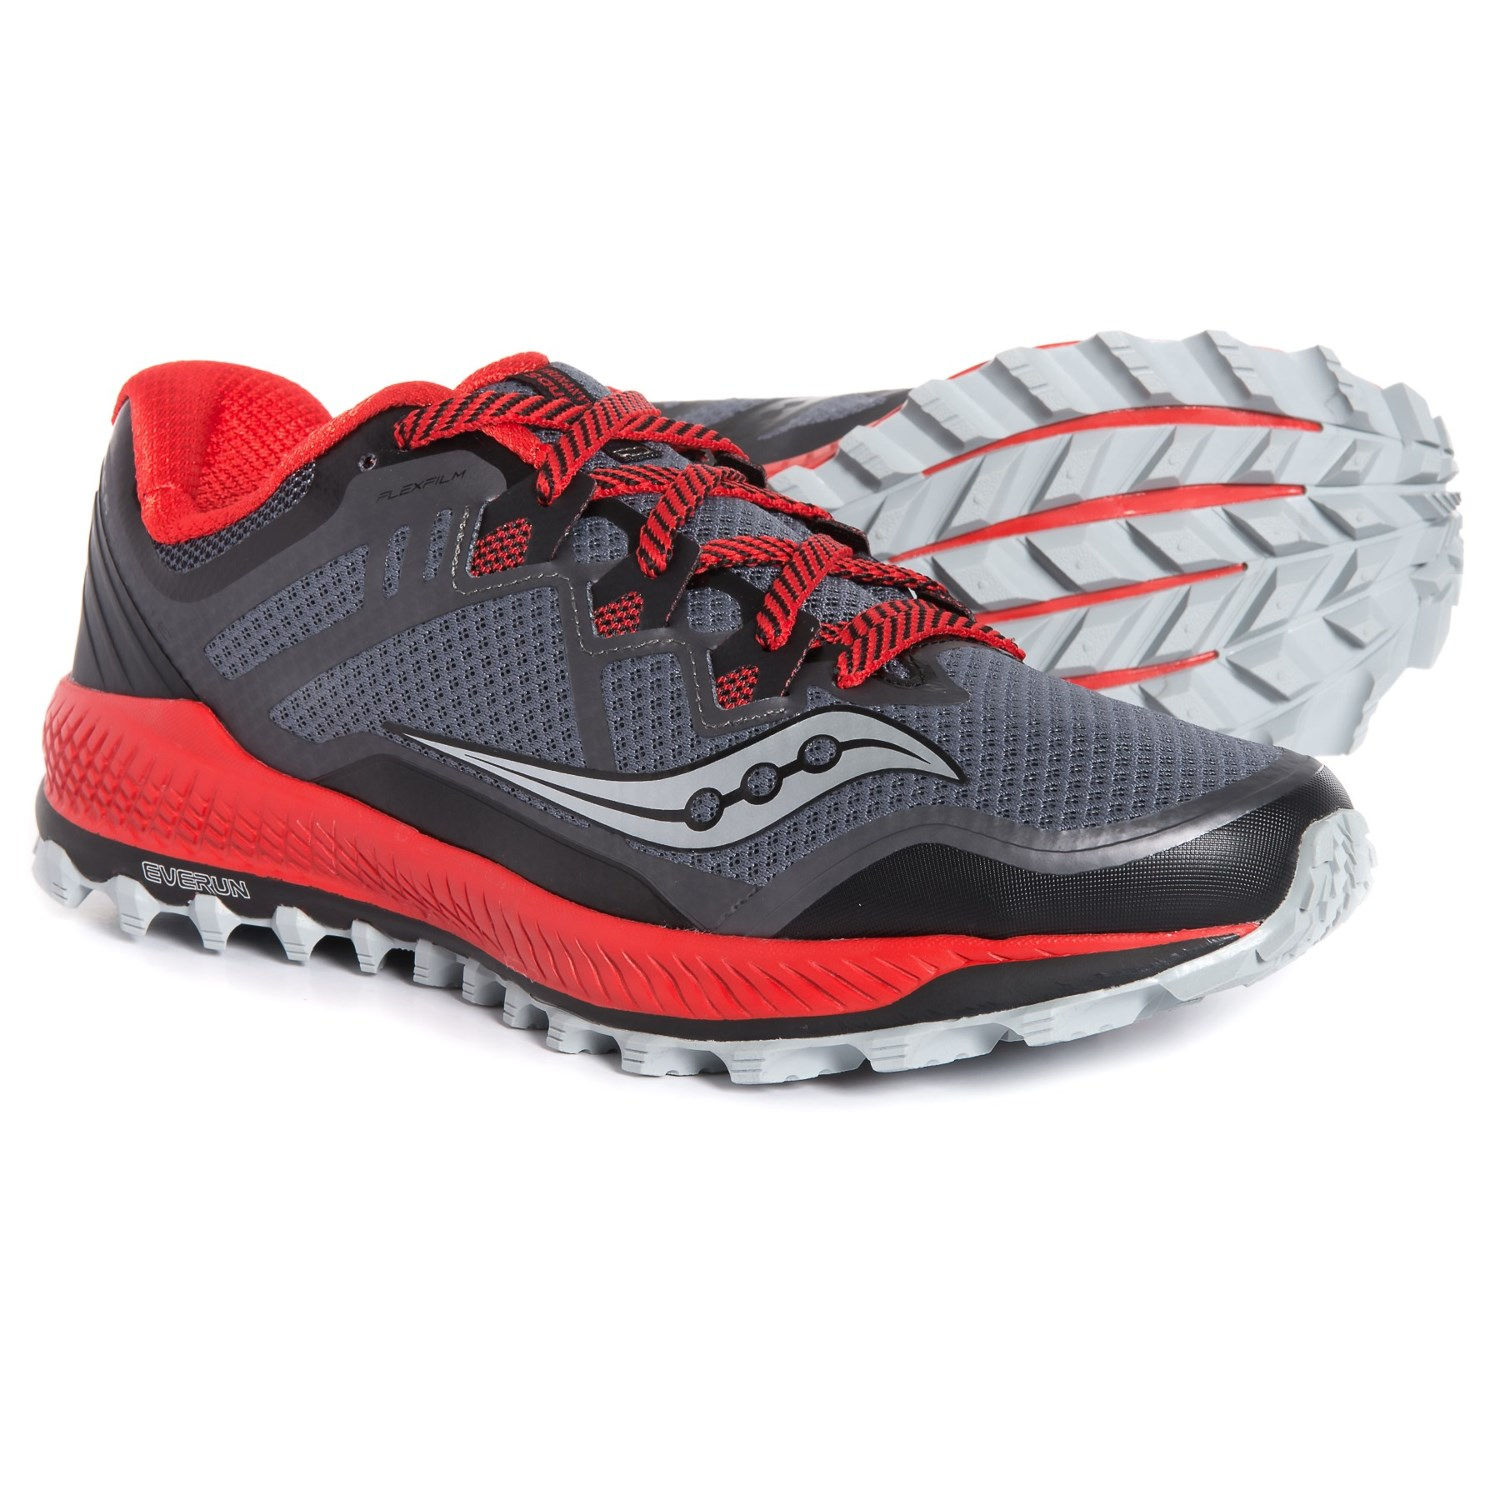 5f2e90f5c7 Saucony Peregrine 8 Trail Running Shoes (For Men)